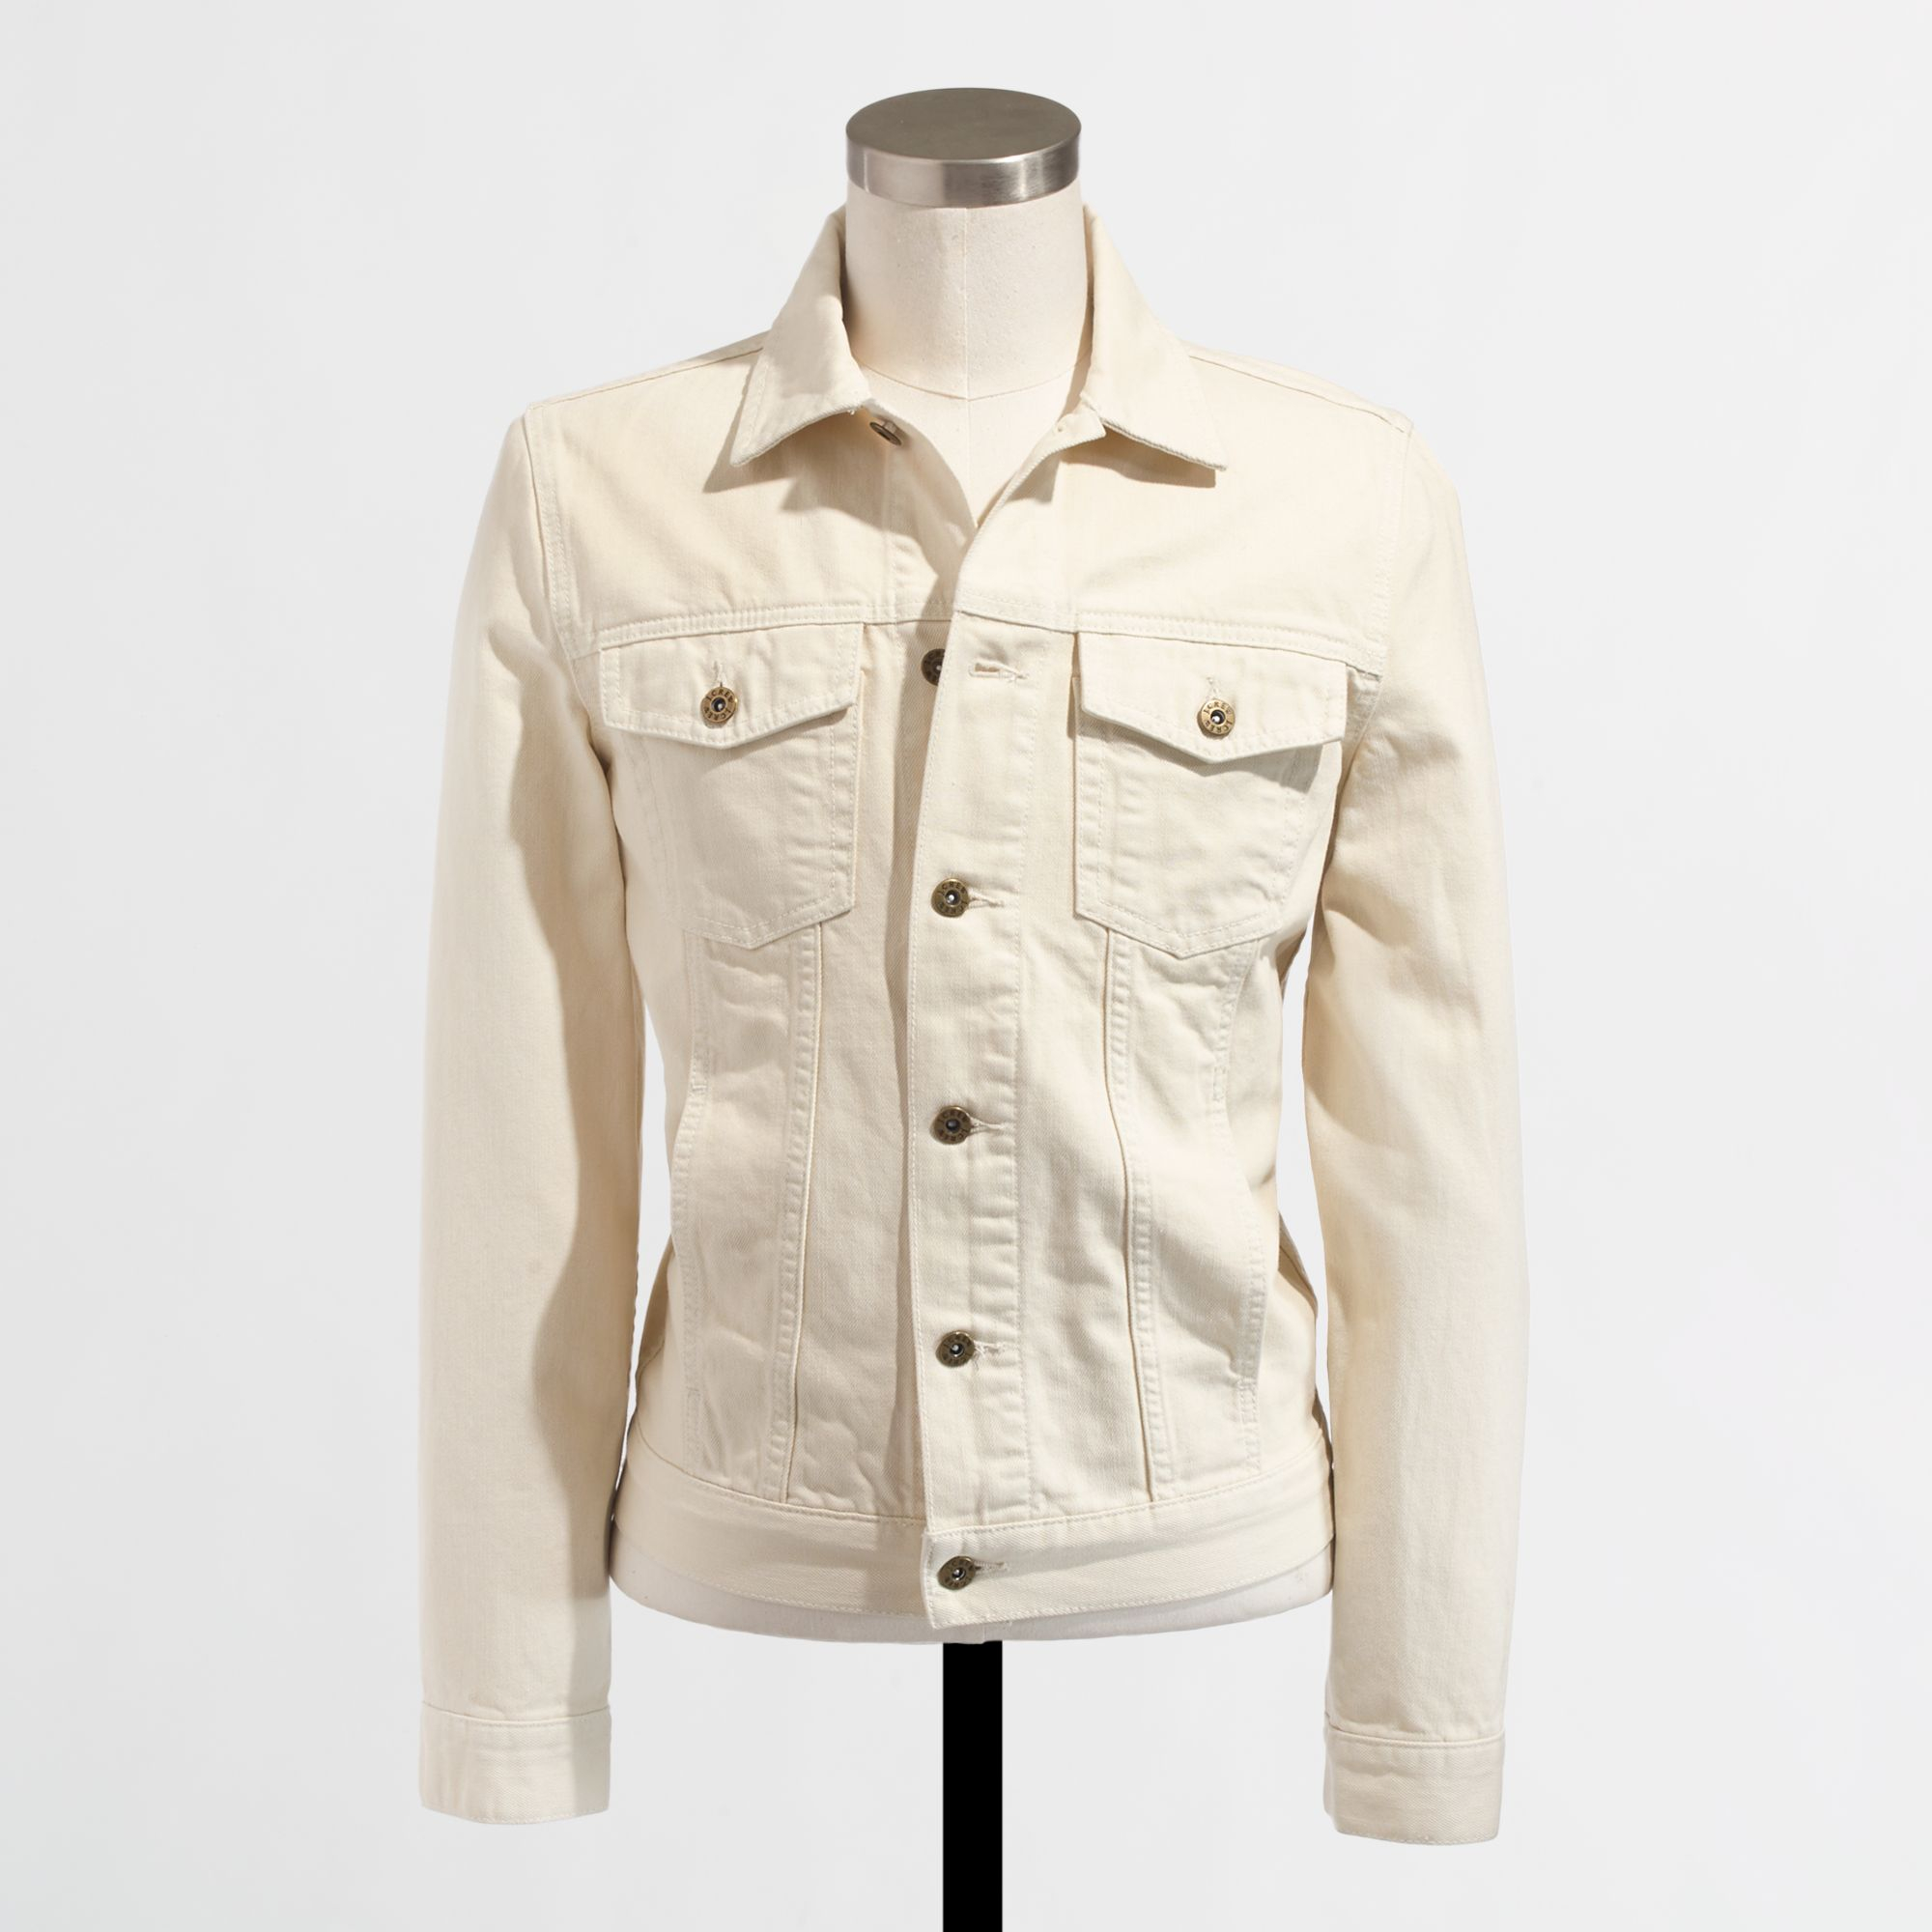 Lyst J Crew Factory Garmentdyed Denim Jacket In Natural